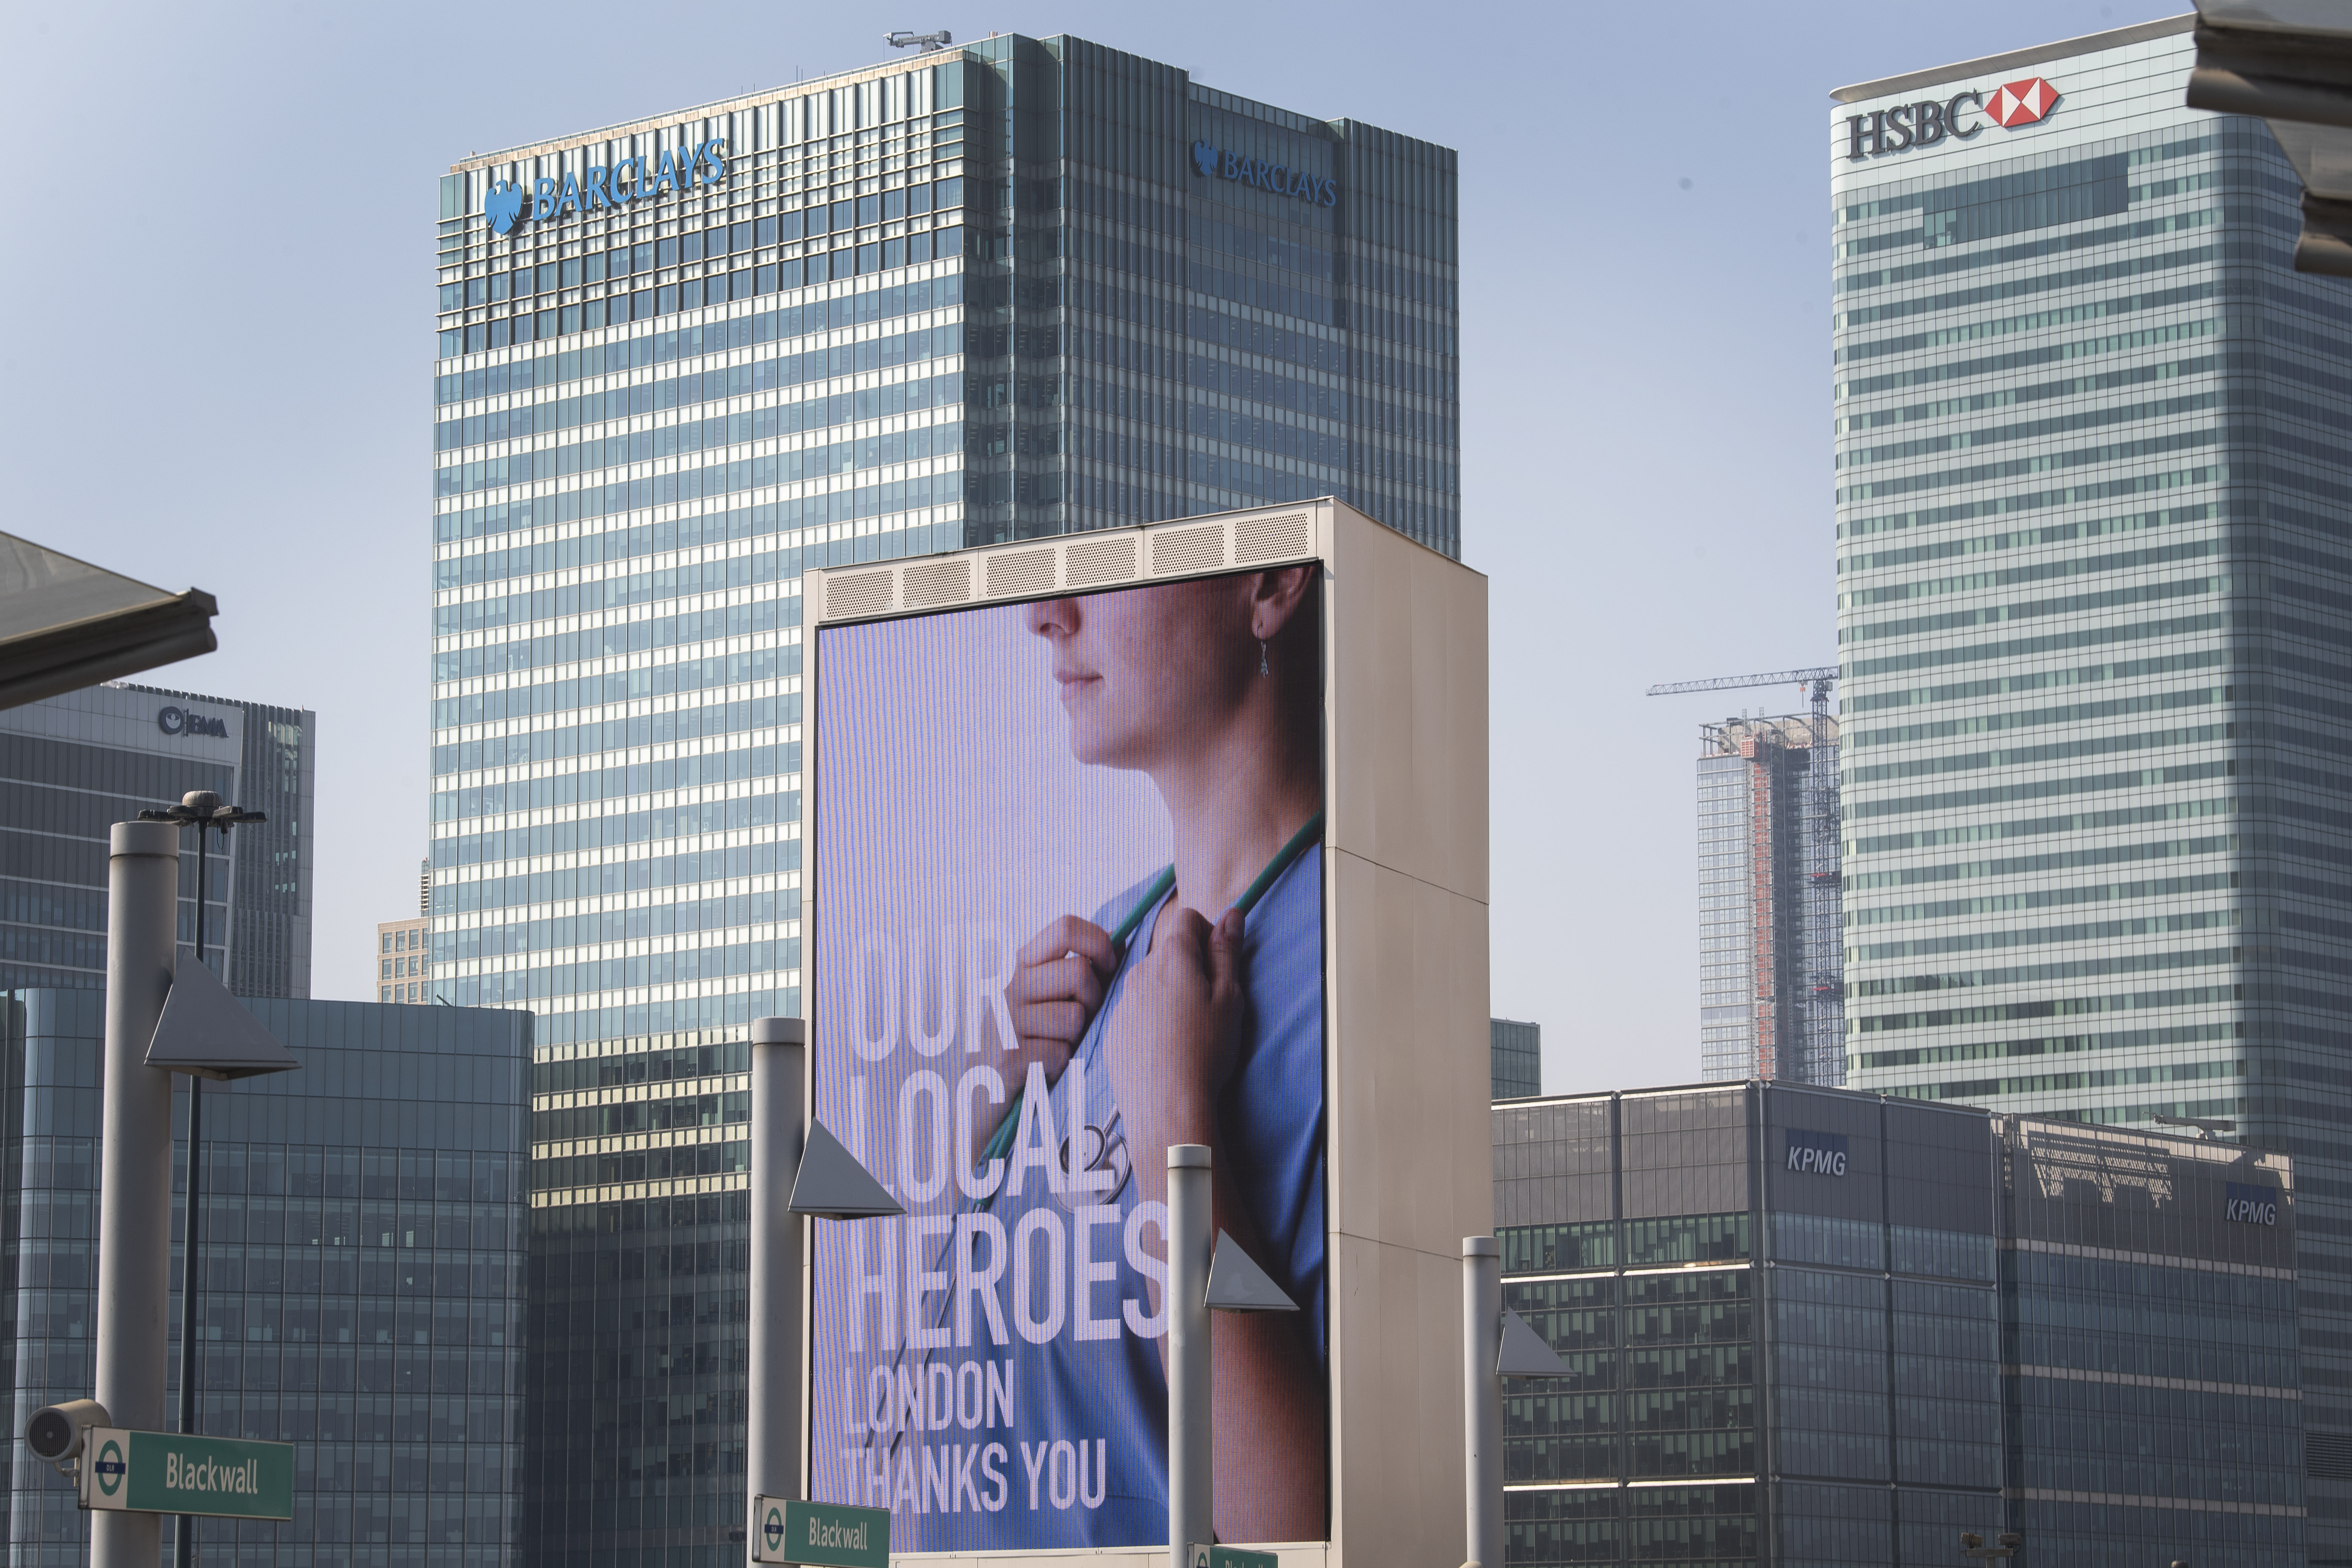 Information screens saluting local heroes on a main road passing Canary Wharf in east London as the UK continues in lockdown to help curb the spread of the coronavirus.